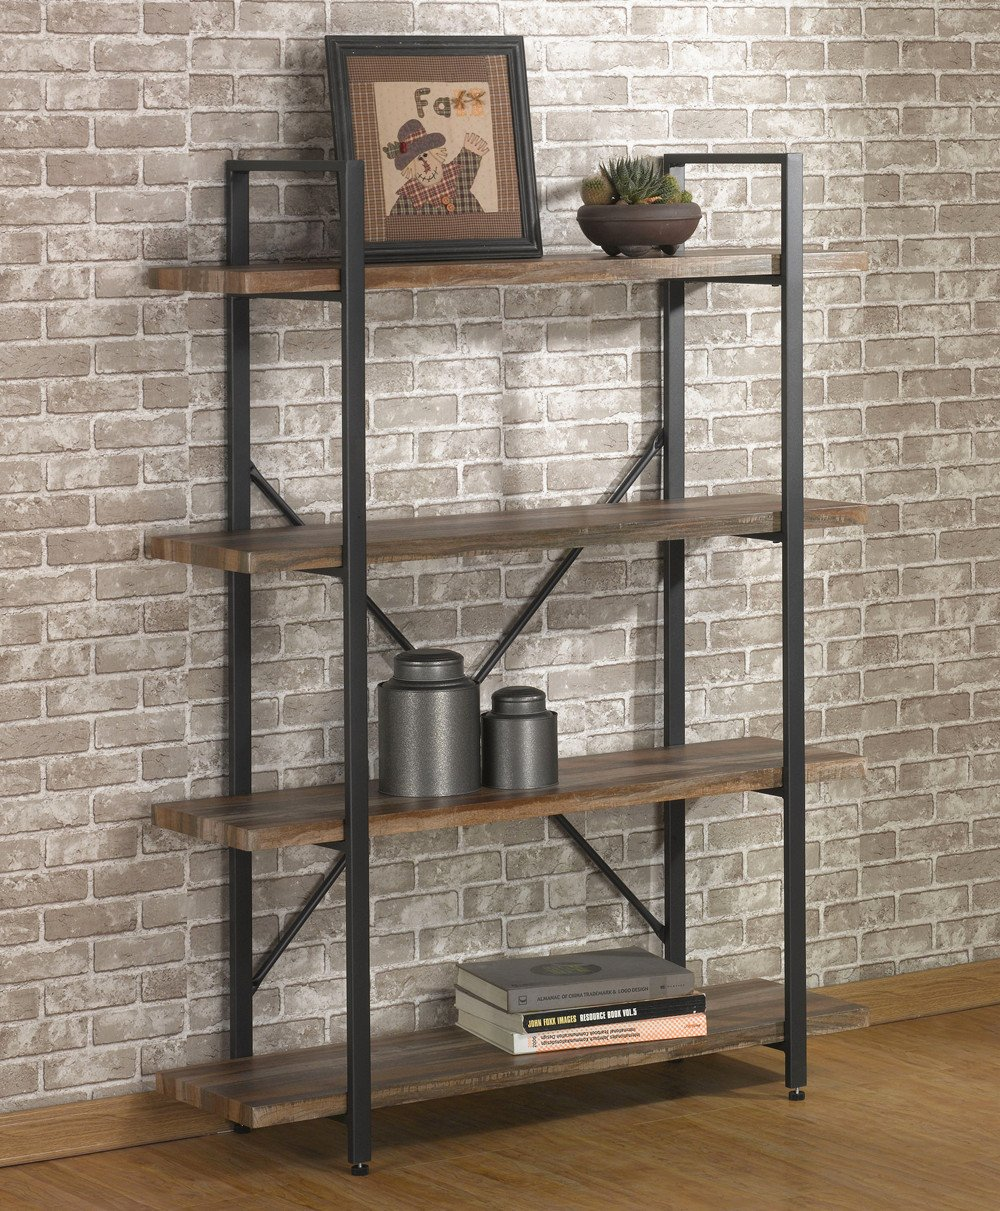 O&K Furniture 4 Tier Bookcases and Book Shelves, Industrial Vintage Metal and Wood Bookcases Furniture by O&K Furniture (Image #1)